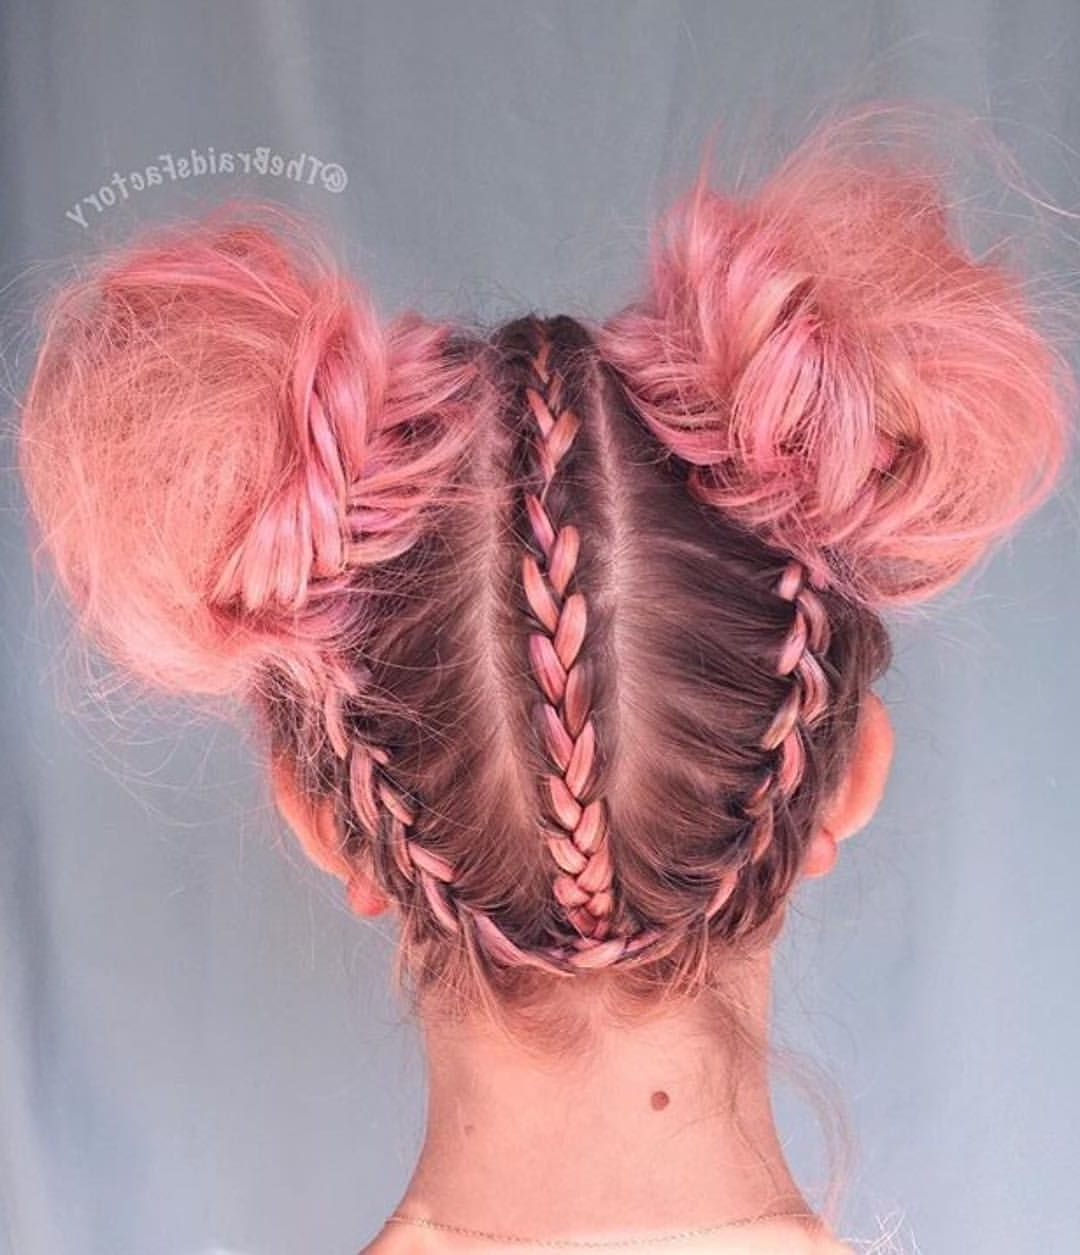 Festival For Widely Used Braid Rave Hairstyles (View 6 of 15)